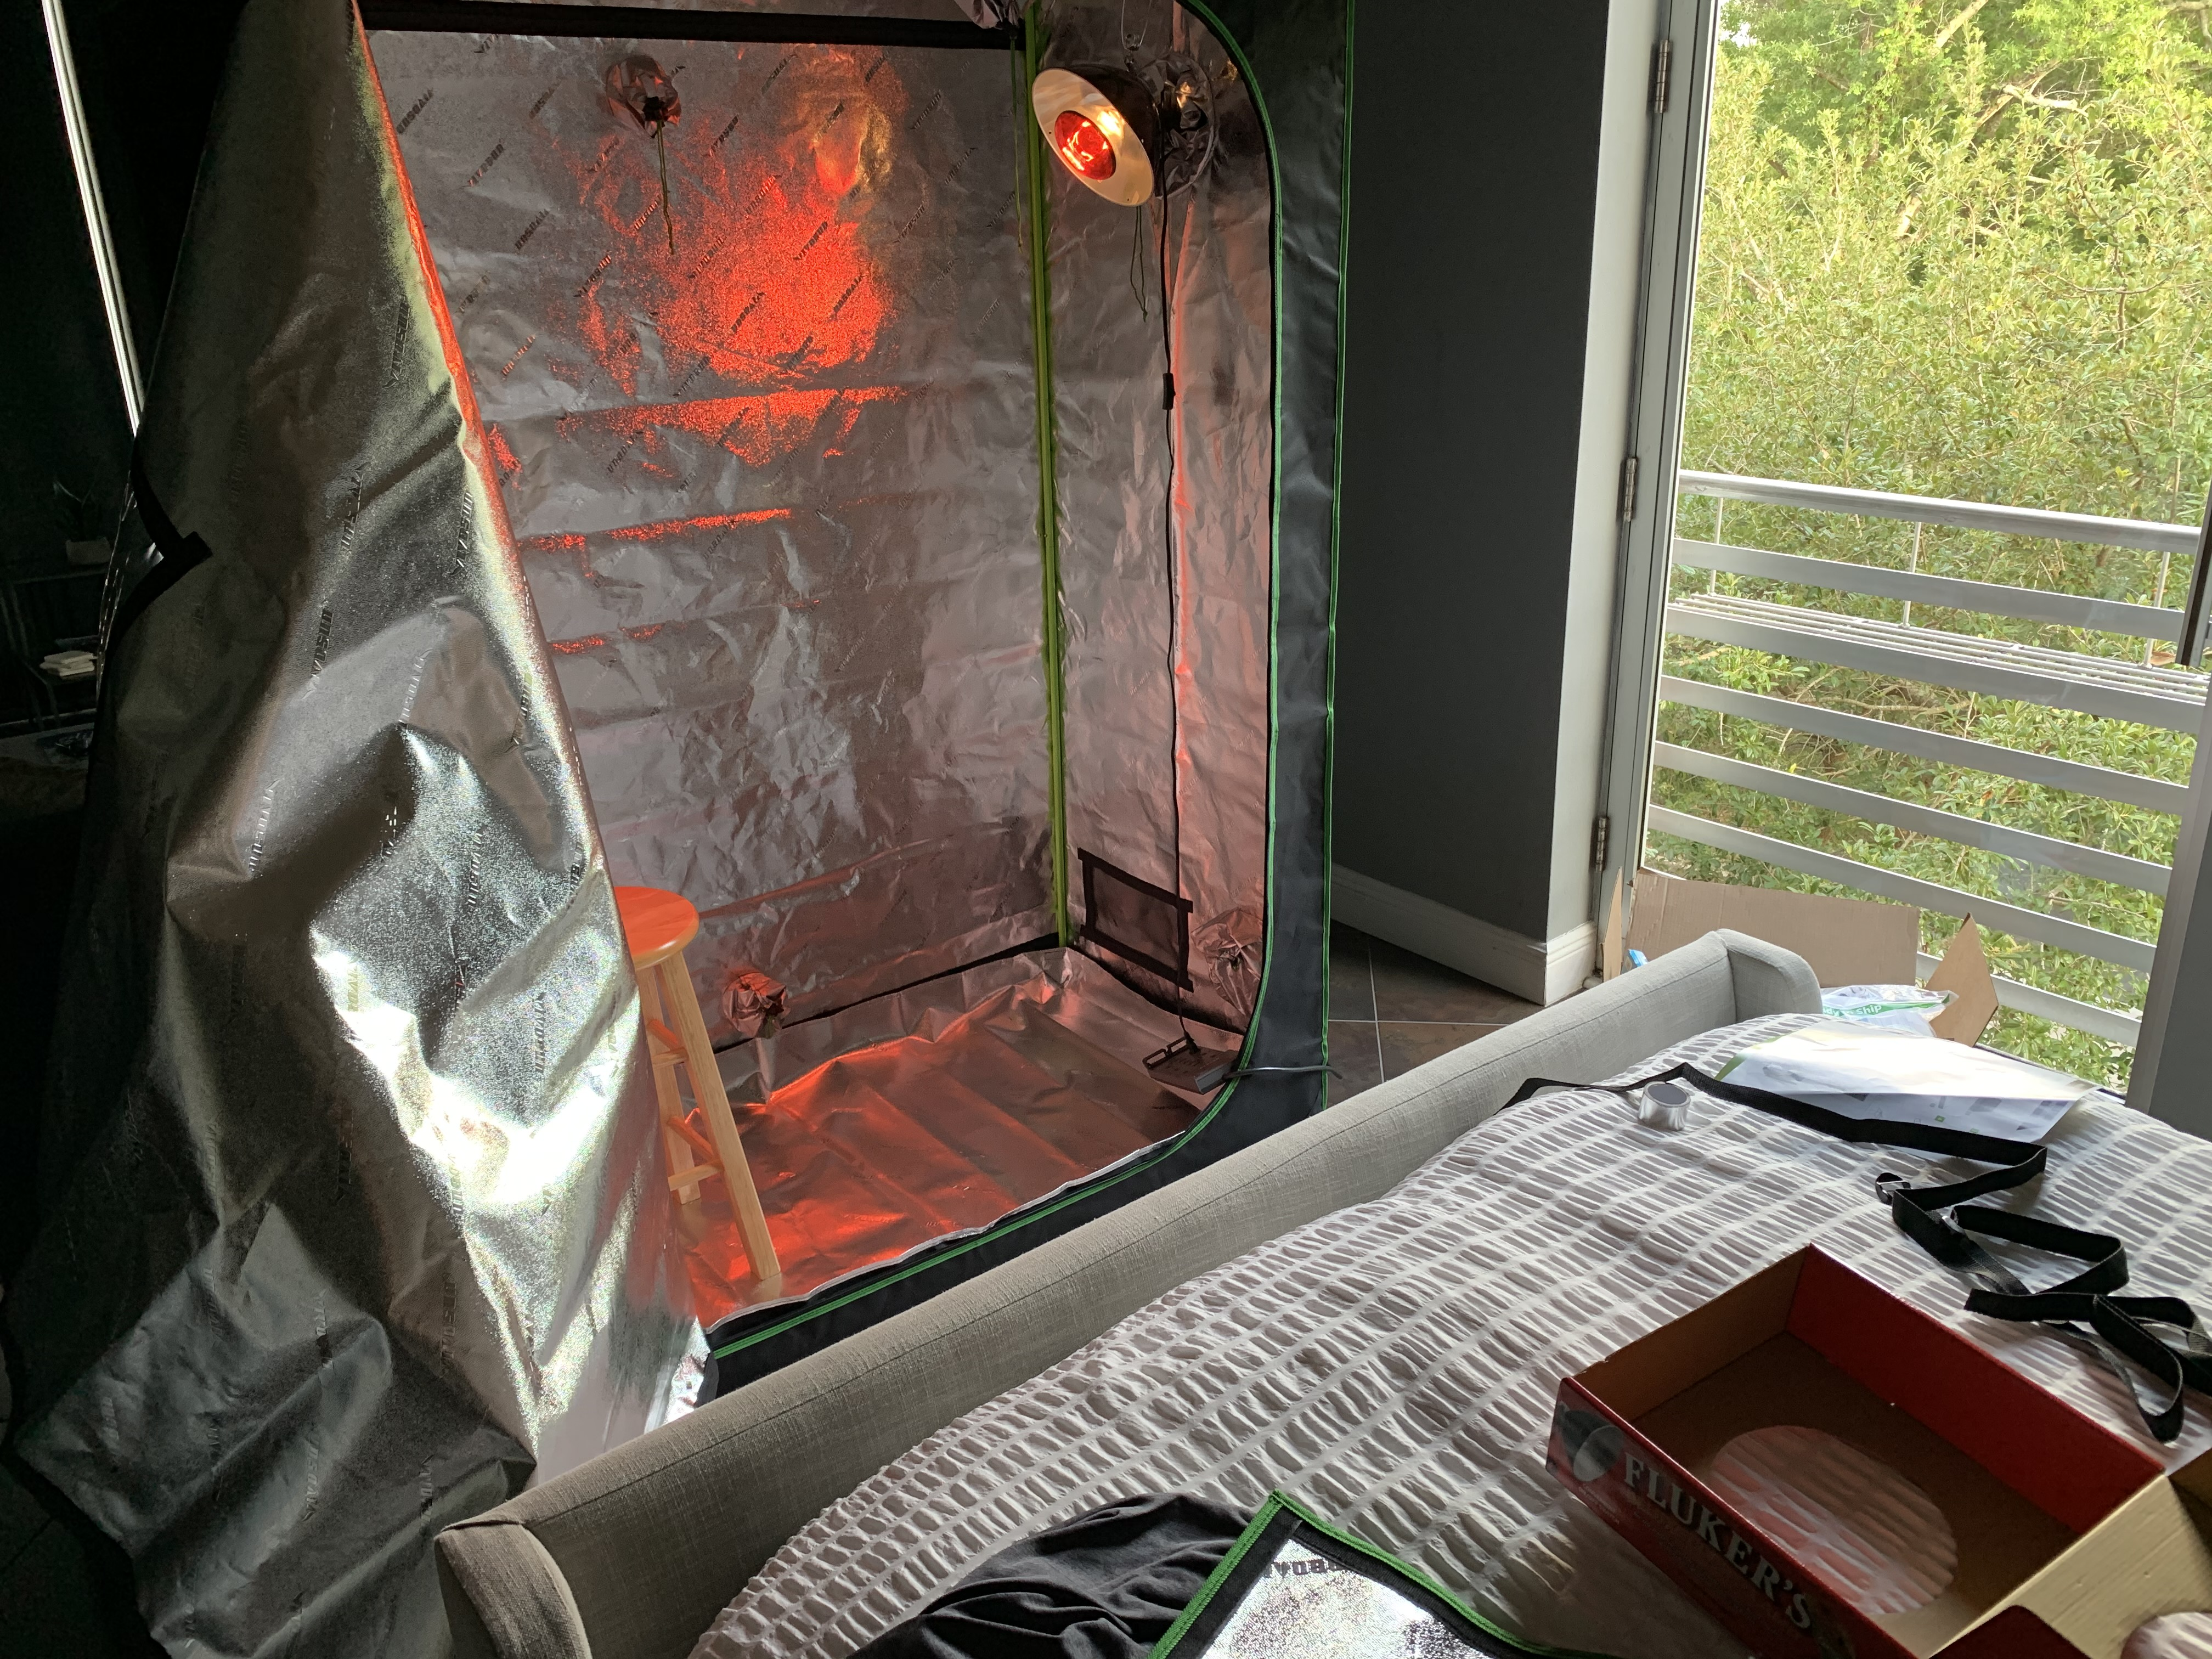 diy infrared sauna course I built during covid airbnb stay